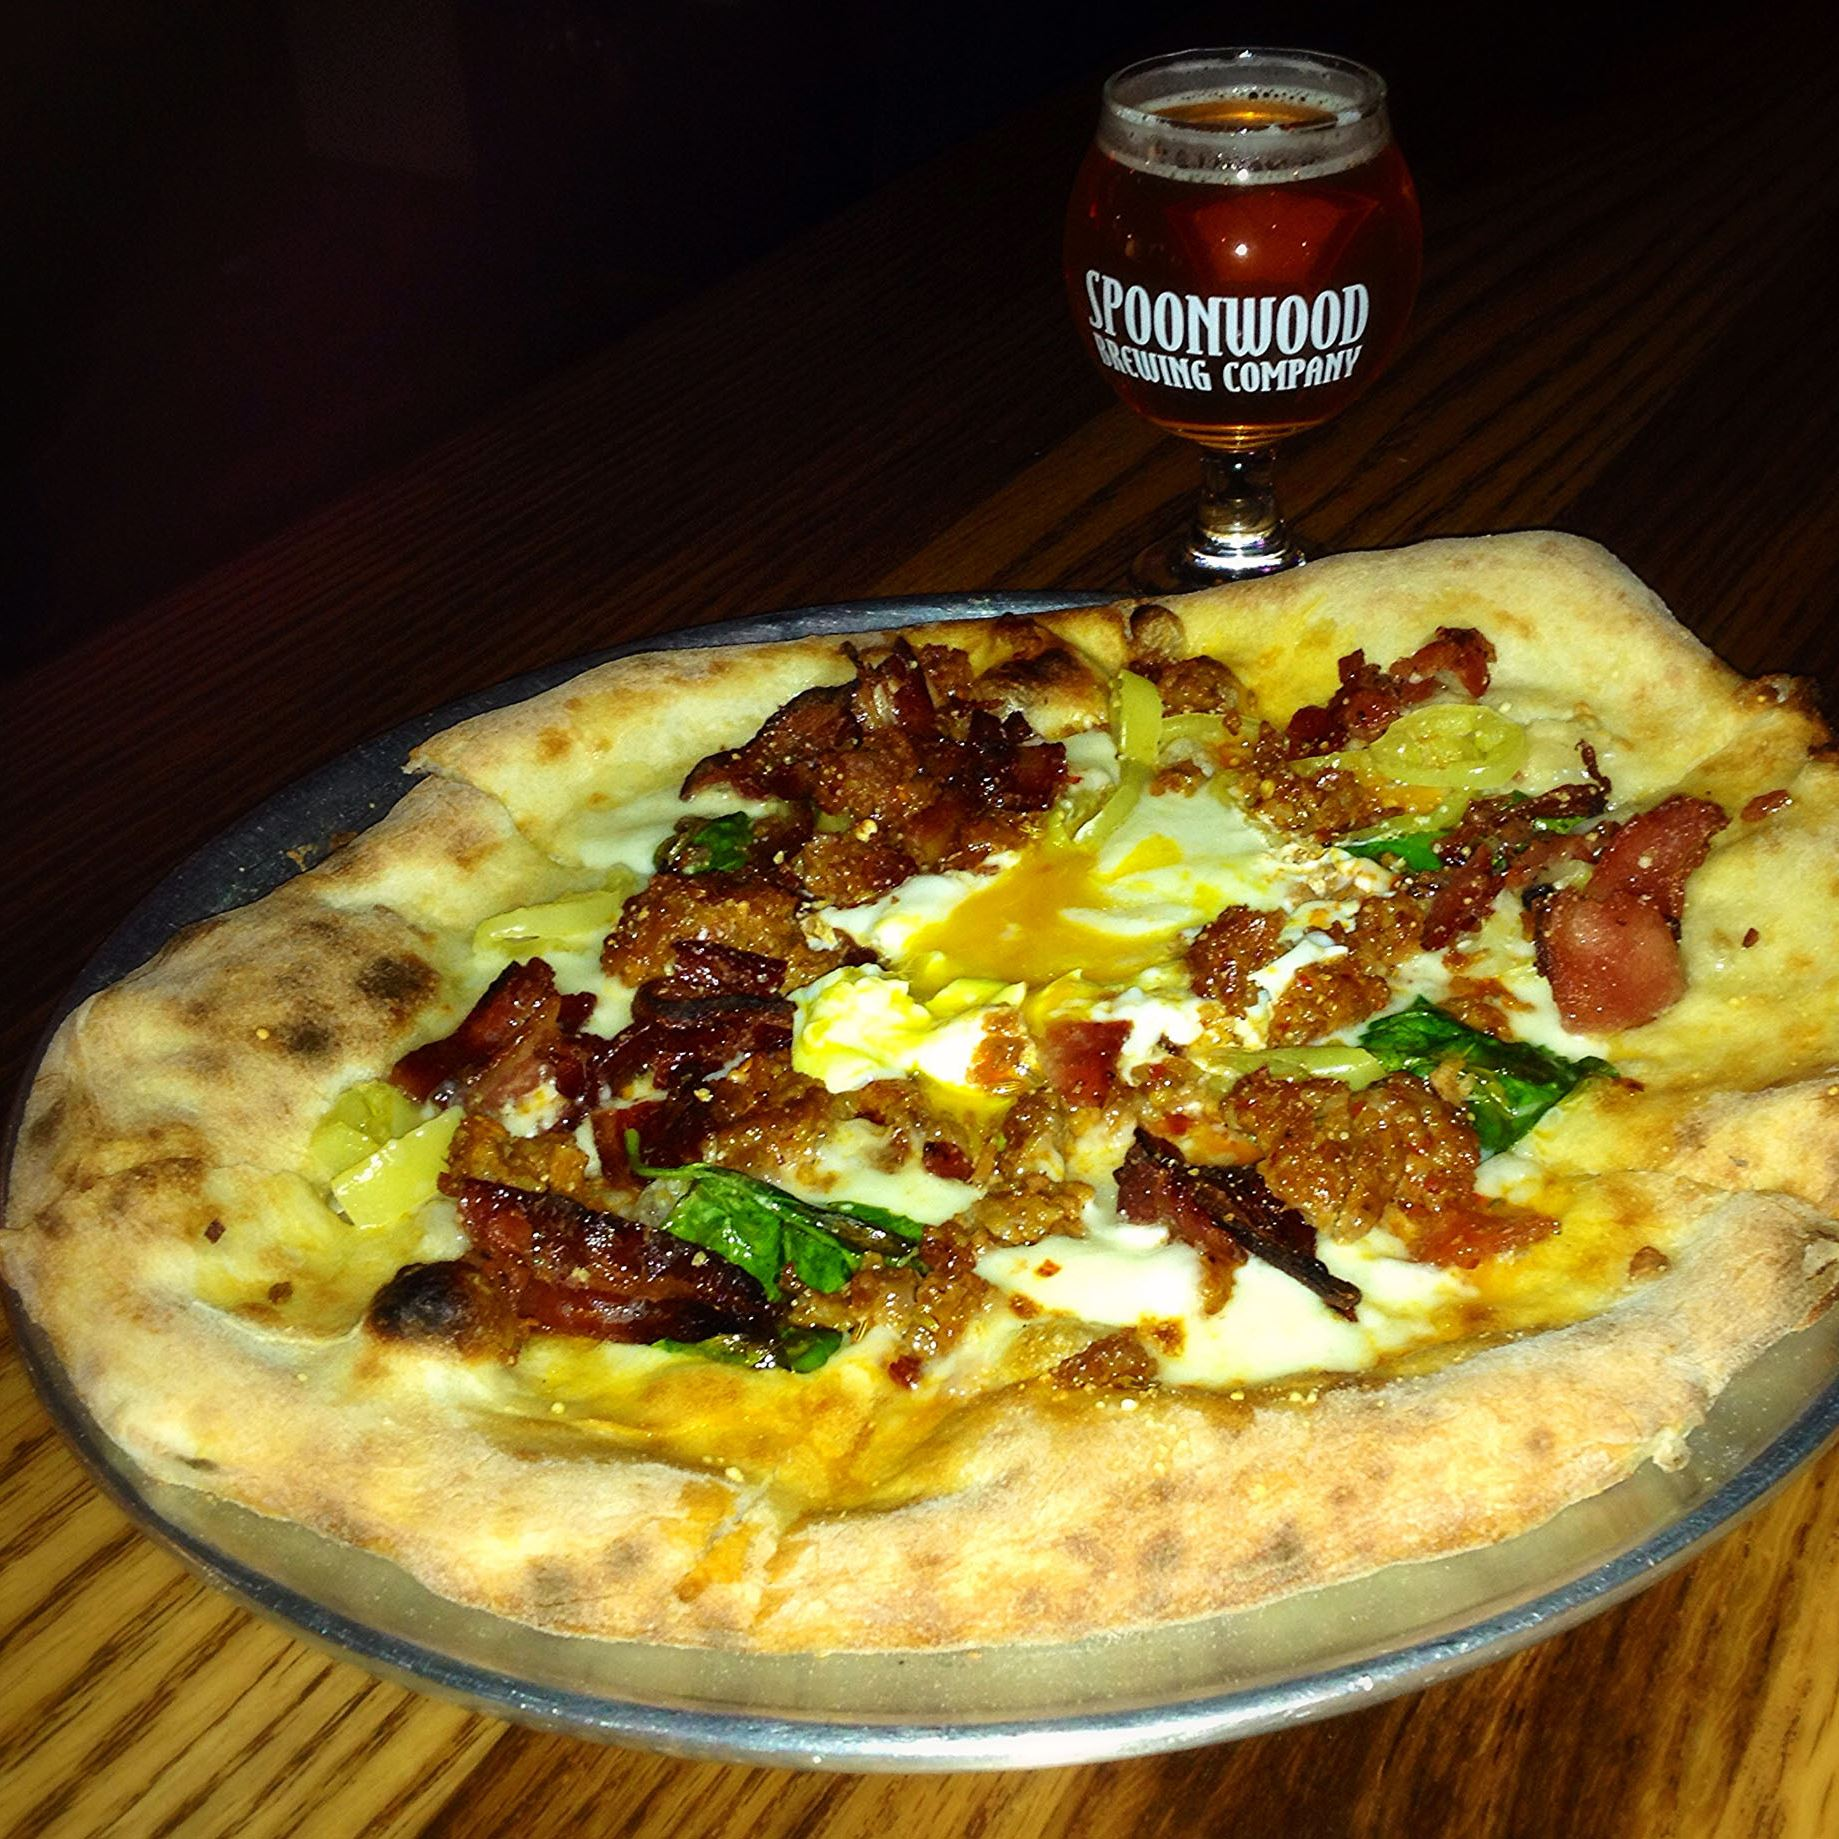 Munch goes to Spoonwood Brewing Company in Bethel Park The Wake & Bake pizza and Killer Diller IPA at Spoonwood Brewing Company.